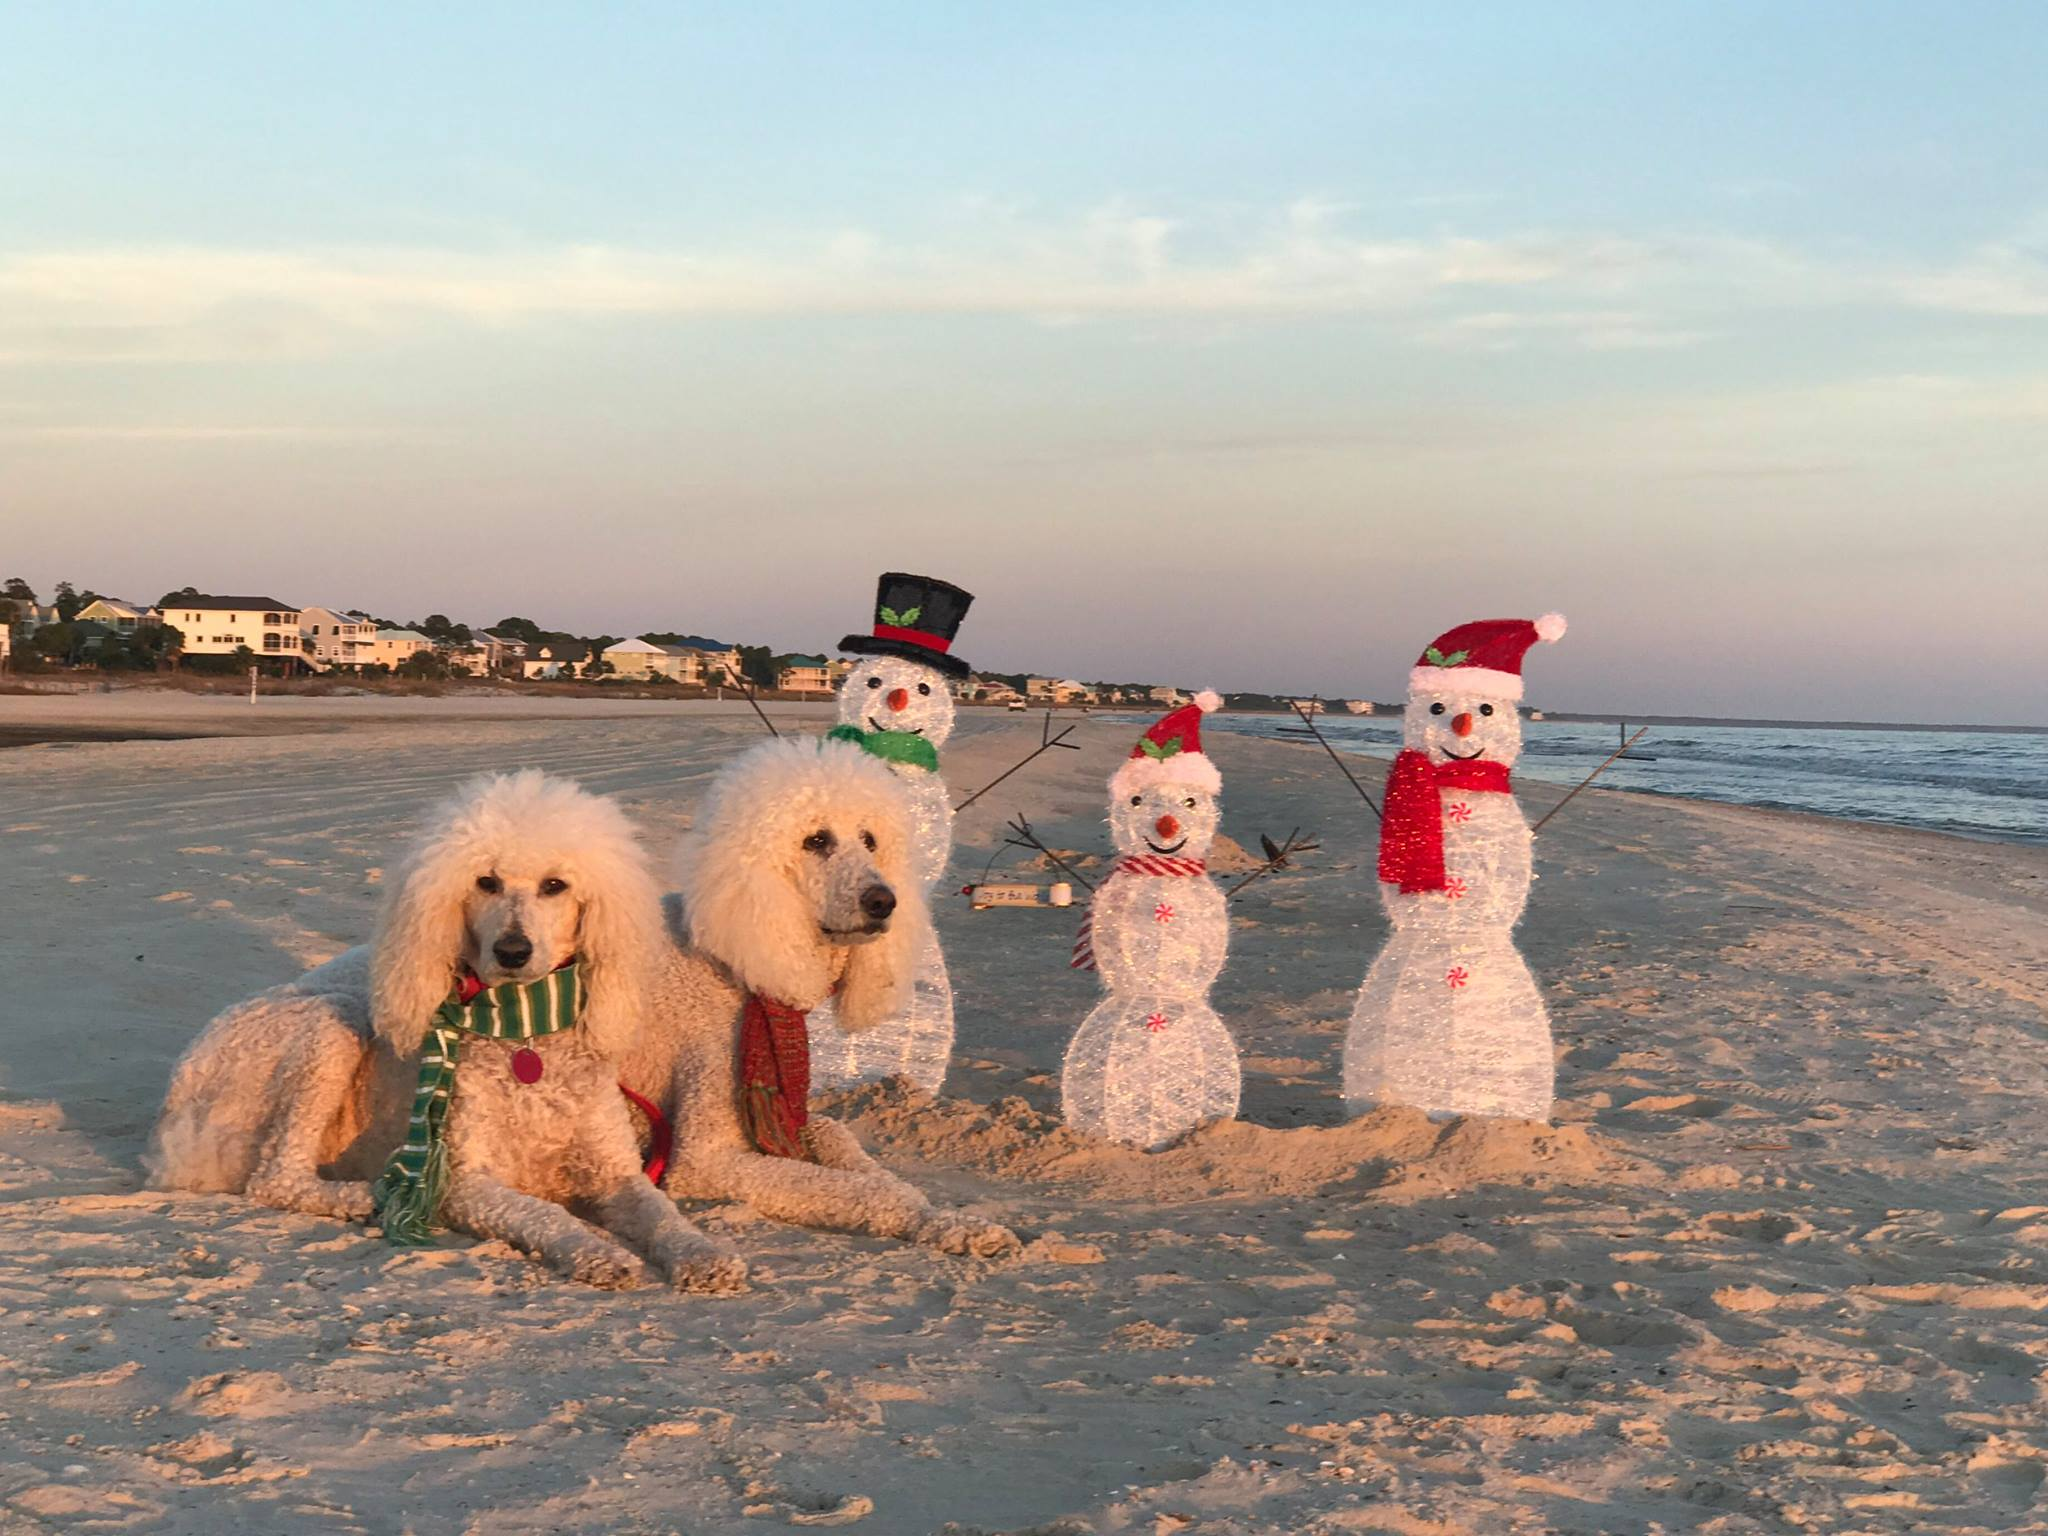 florida friendly exteriorpoint vacation beach seacrest cottages seagrove rentals cottage dog pet in